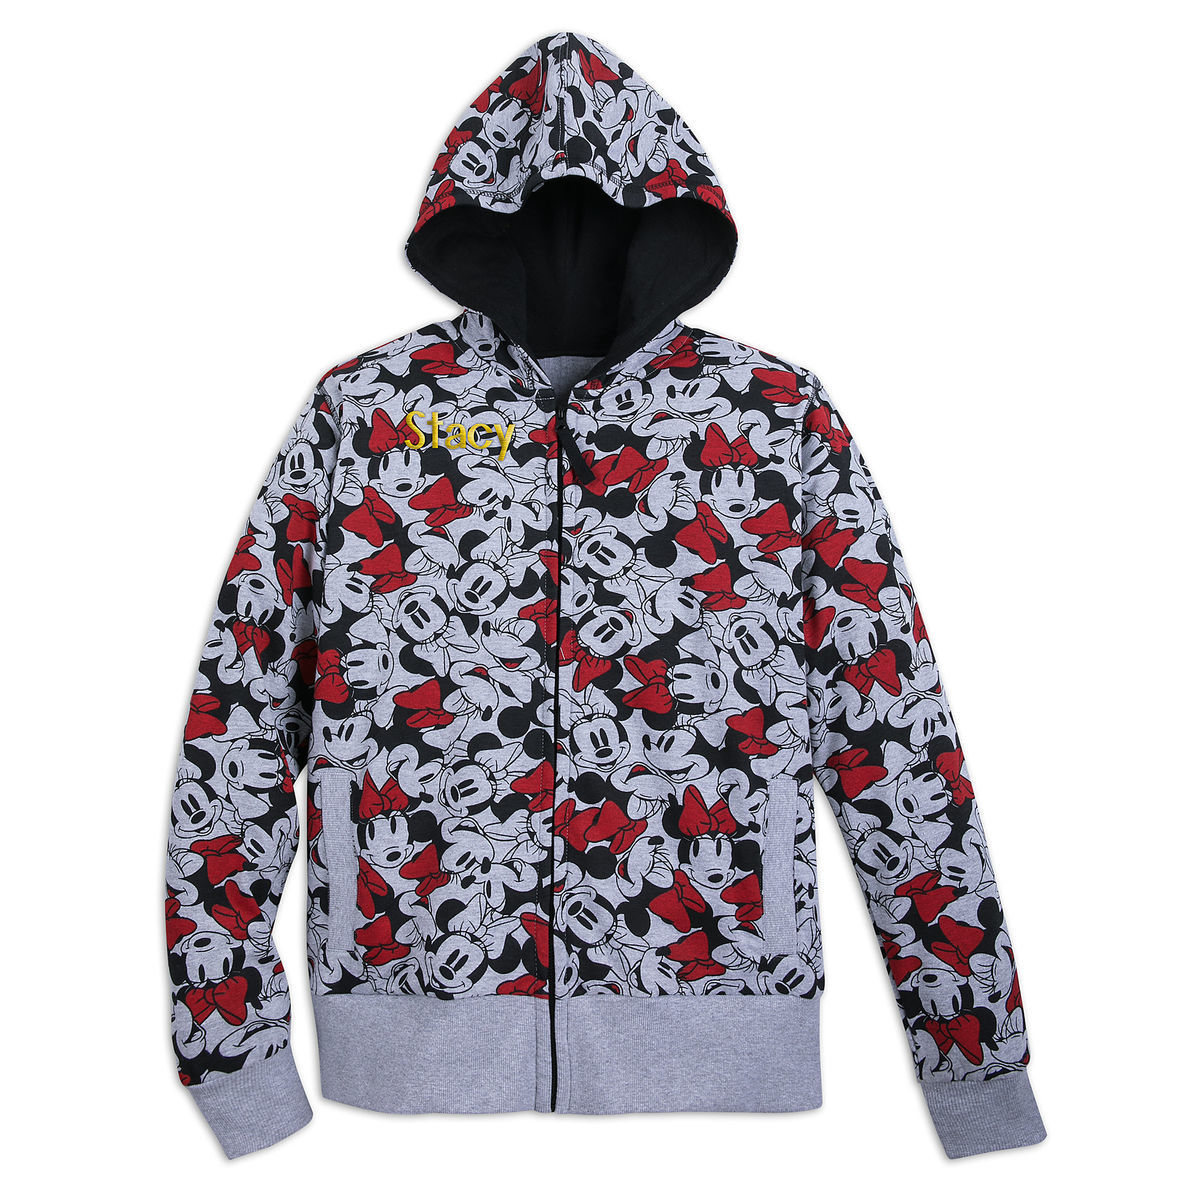 Minnie Mouse Hoodie For Women Personalizable Shopdisney